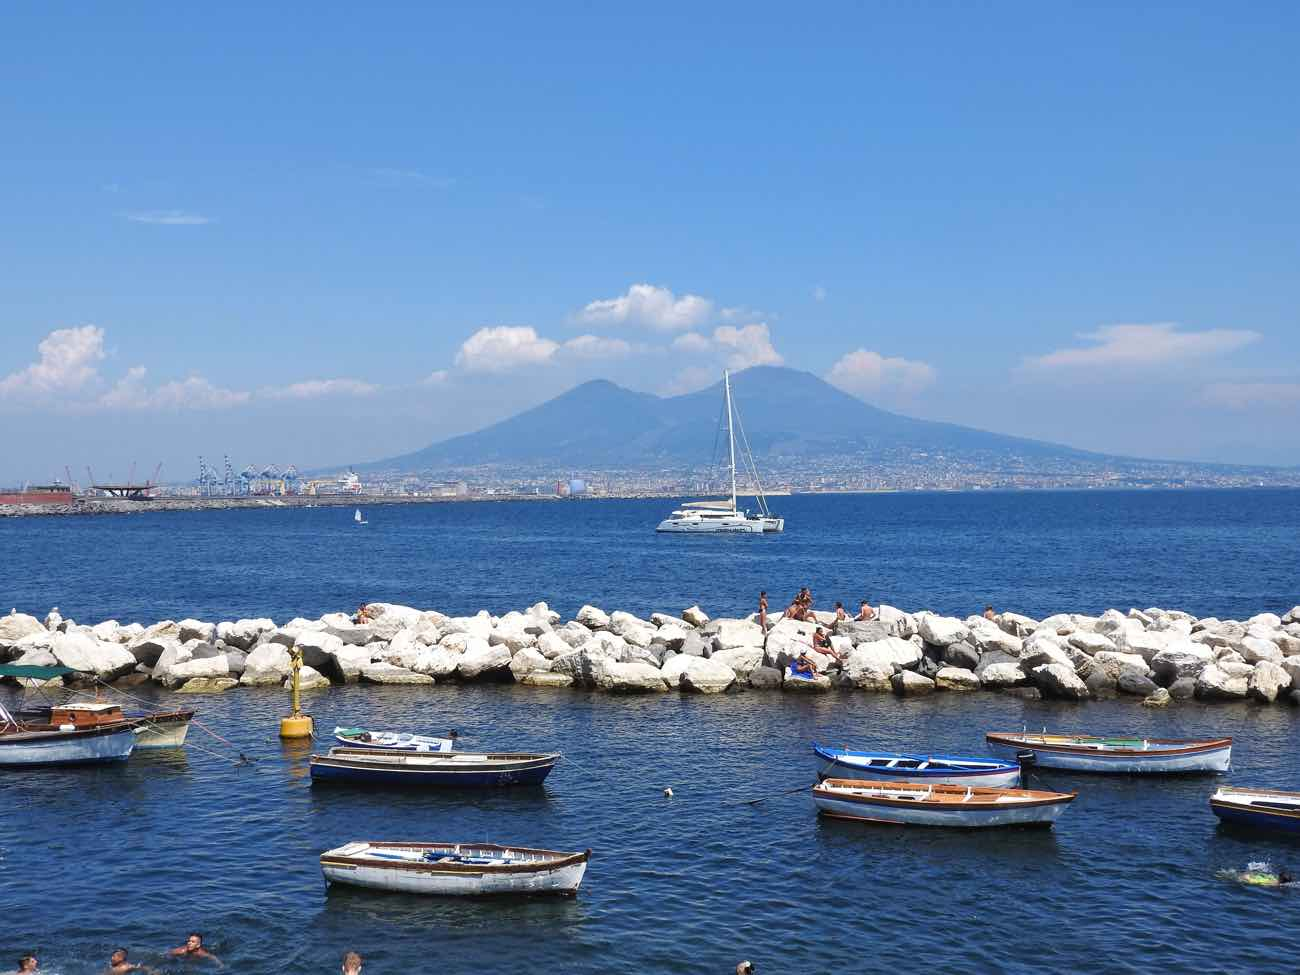 planning a trip to naples italy amalfi coast pompeii vesuvius - naples napoli sea